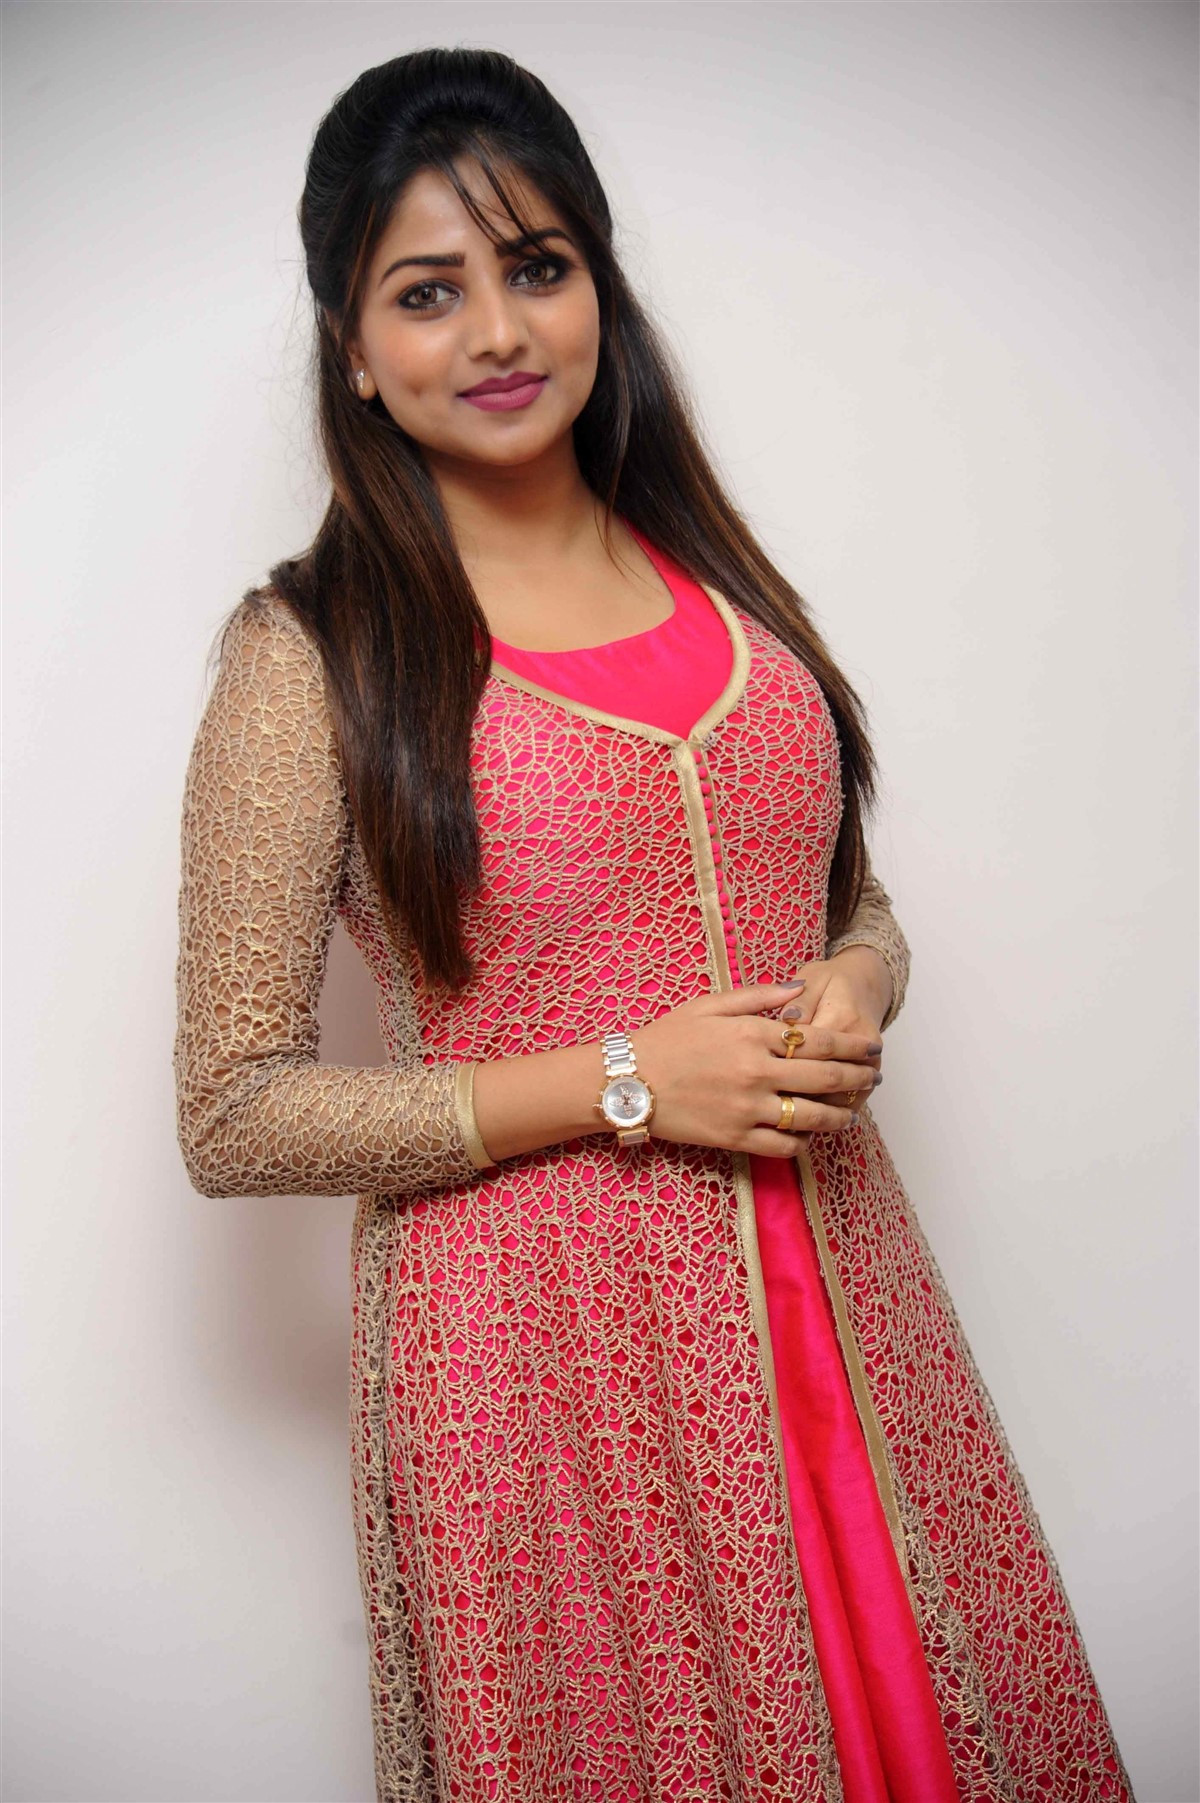 kannada-actress-rachita-ram-latest-photo-shoot-2